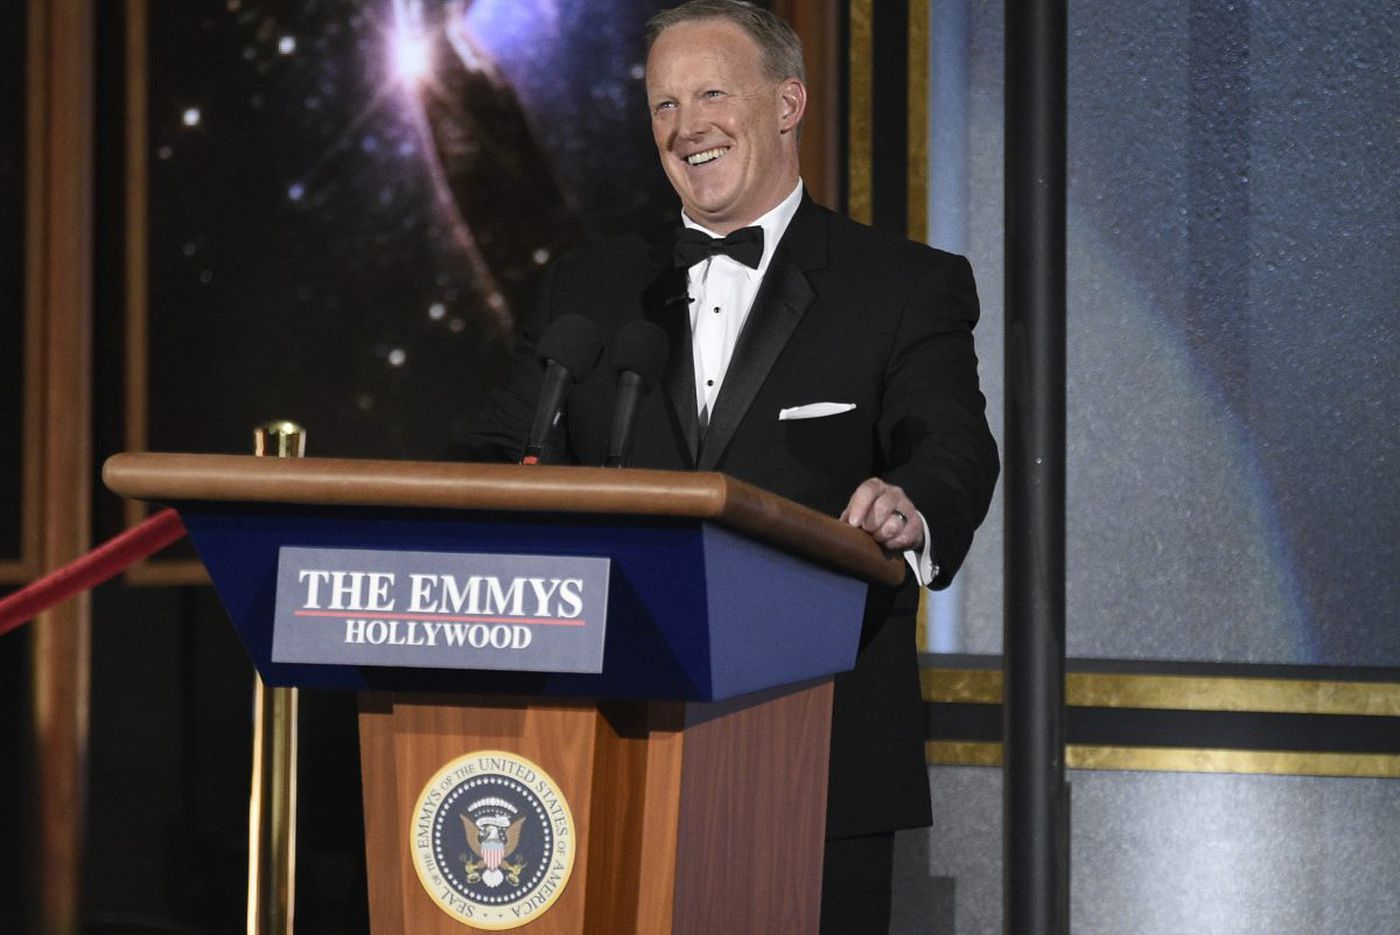 The Emmys, Spicer, and laughing our way toward autocracy | Will Bunch